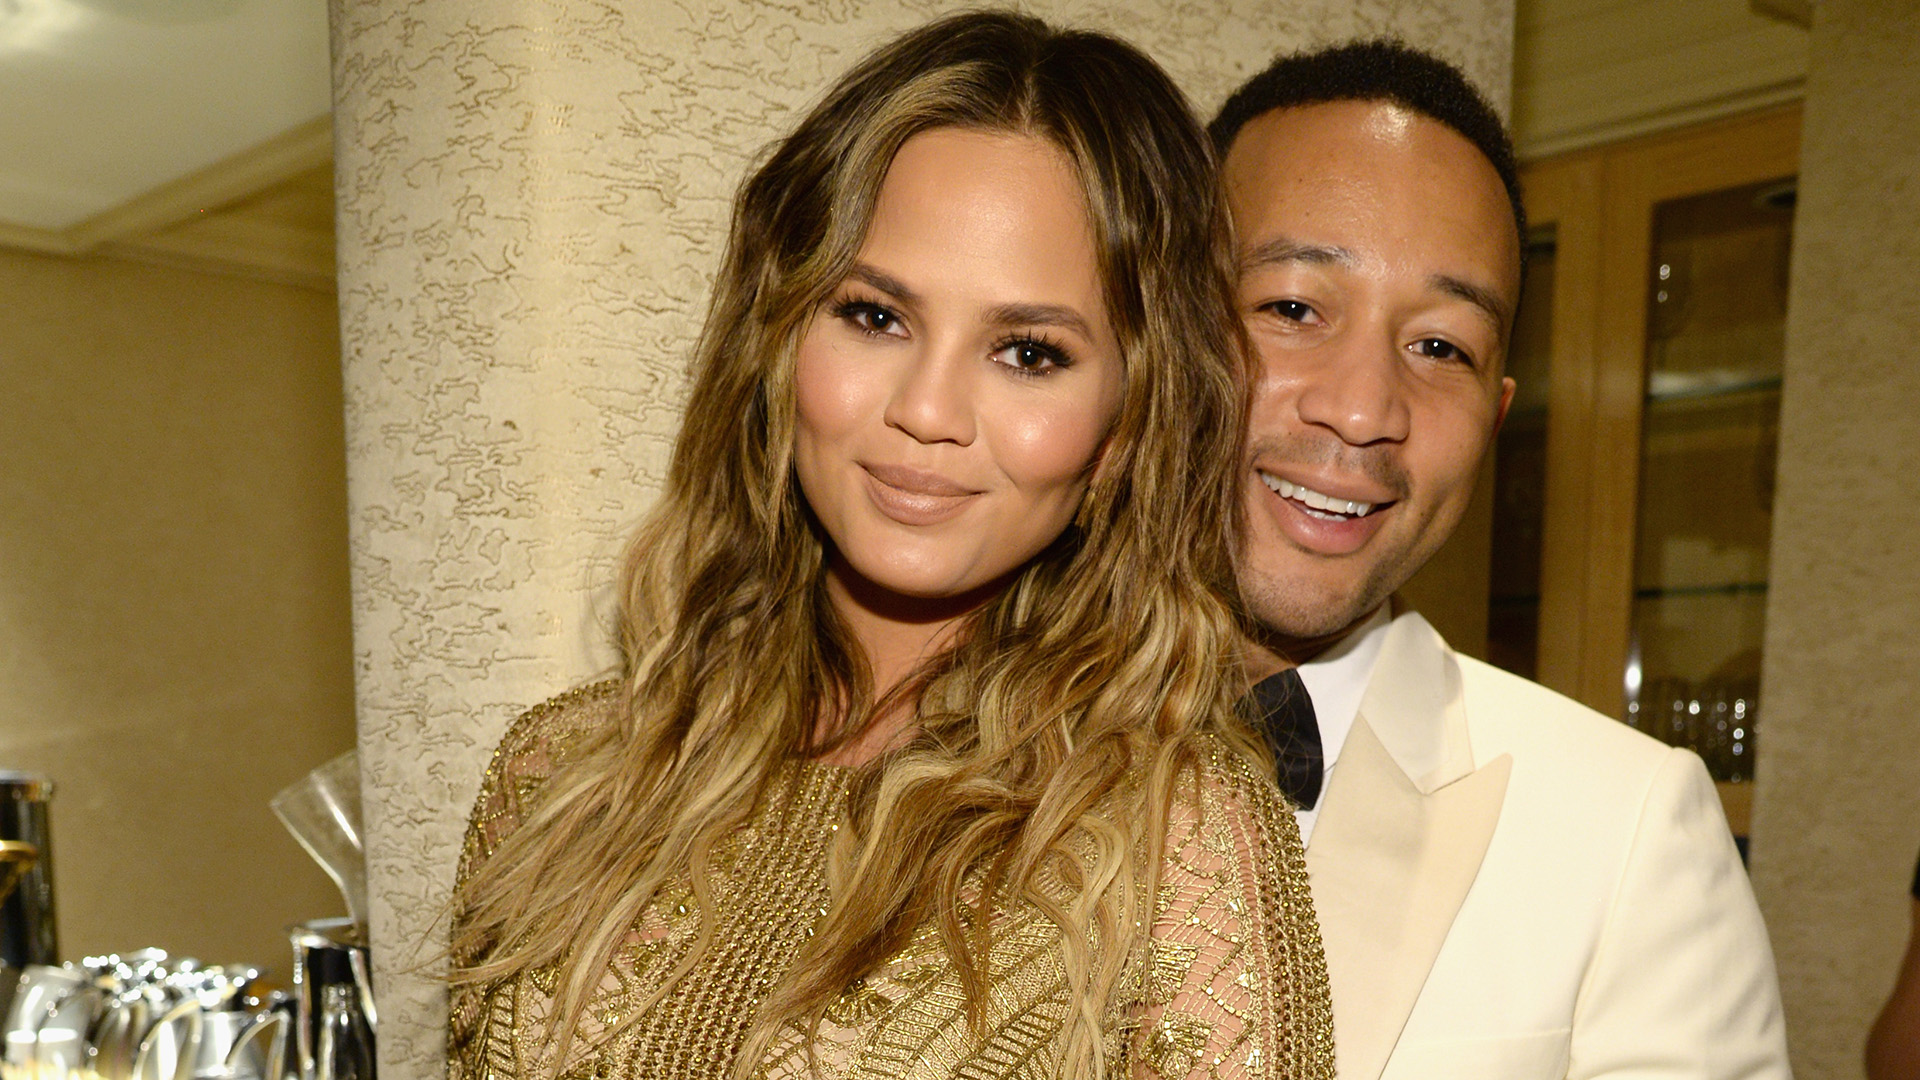 Chrissy Teigen's Dad Gave John Legend a Gift for His Penis for the Holidays